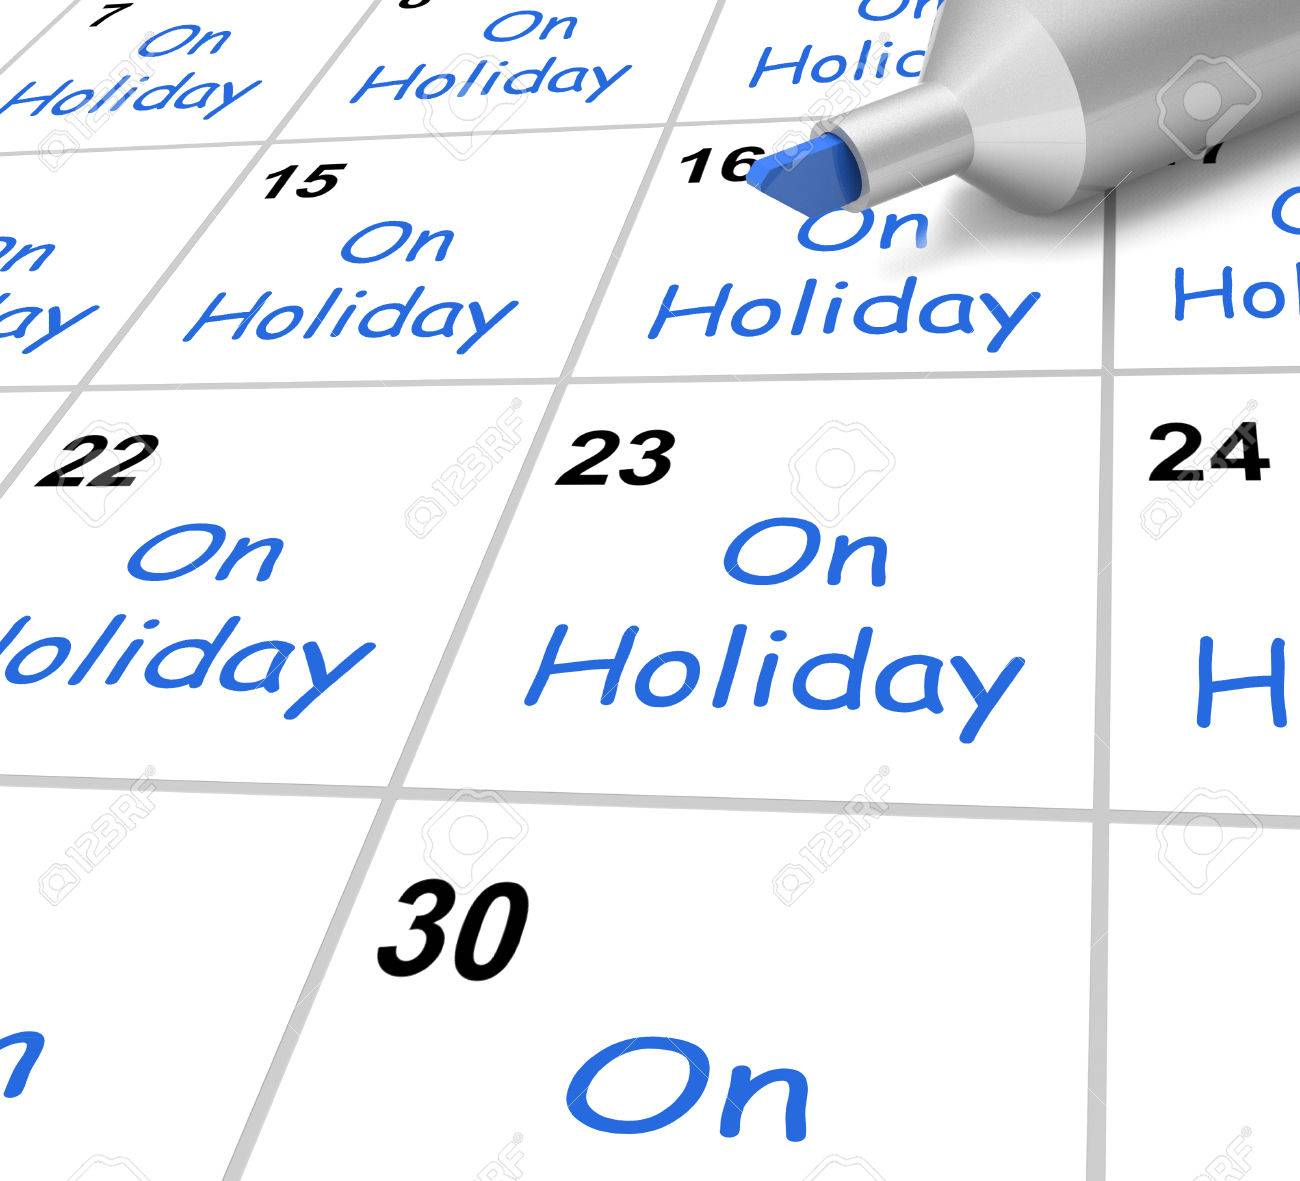 On Holiday Calendar Meaning Vacation And Break From Work Stock ...